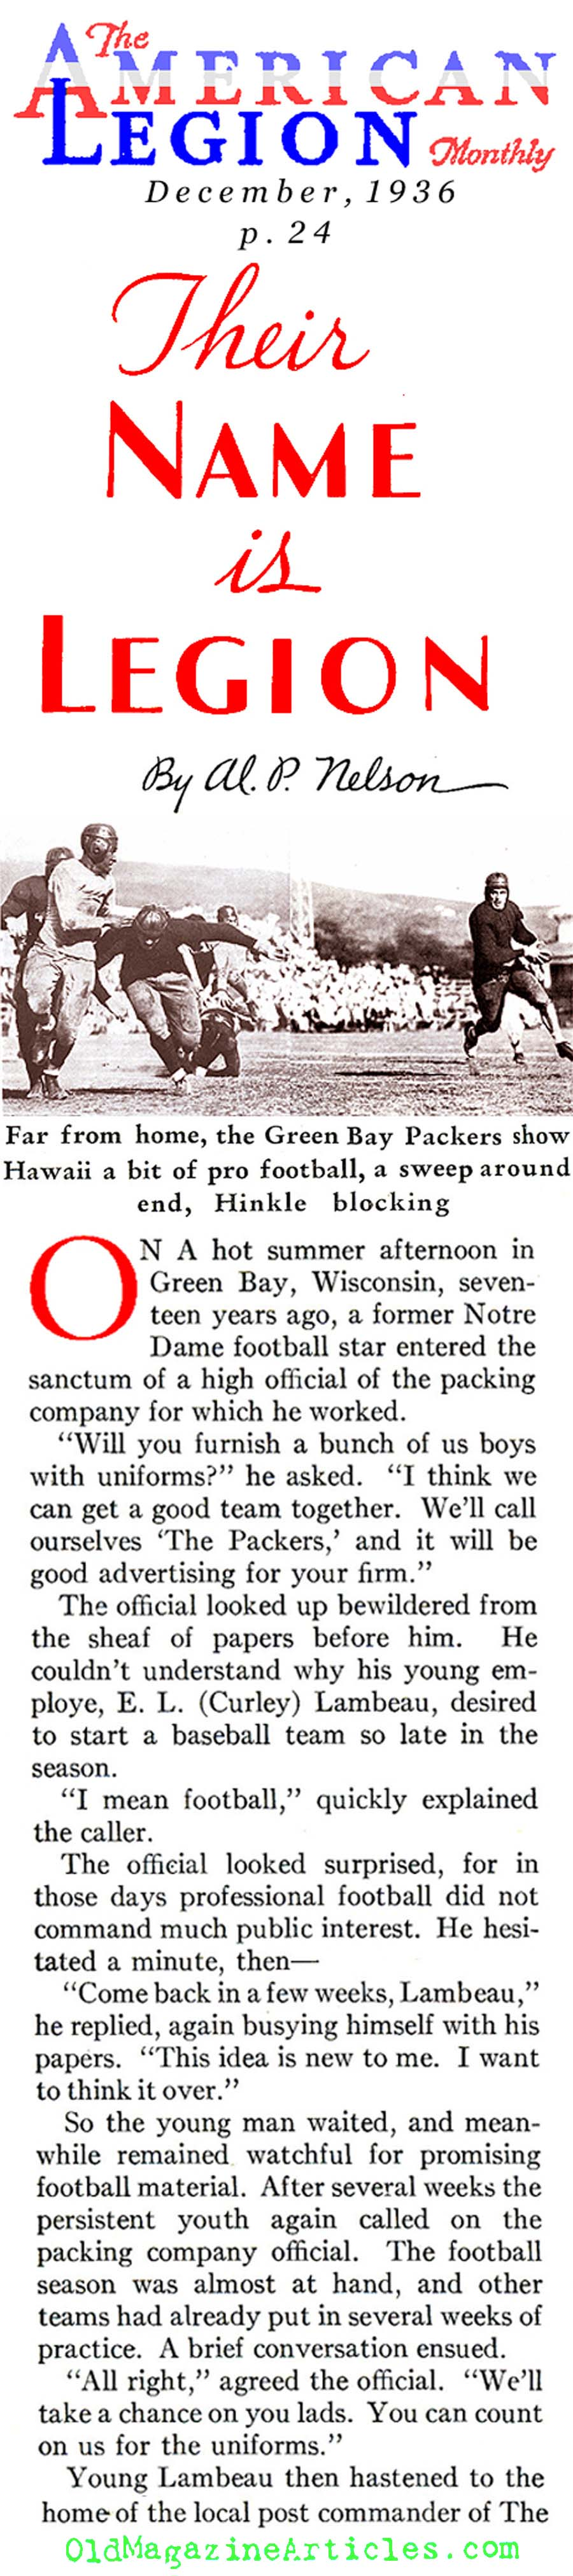 The Birth of the Green Bay Packers (American Legion Monthly, 1936)